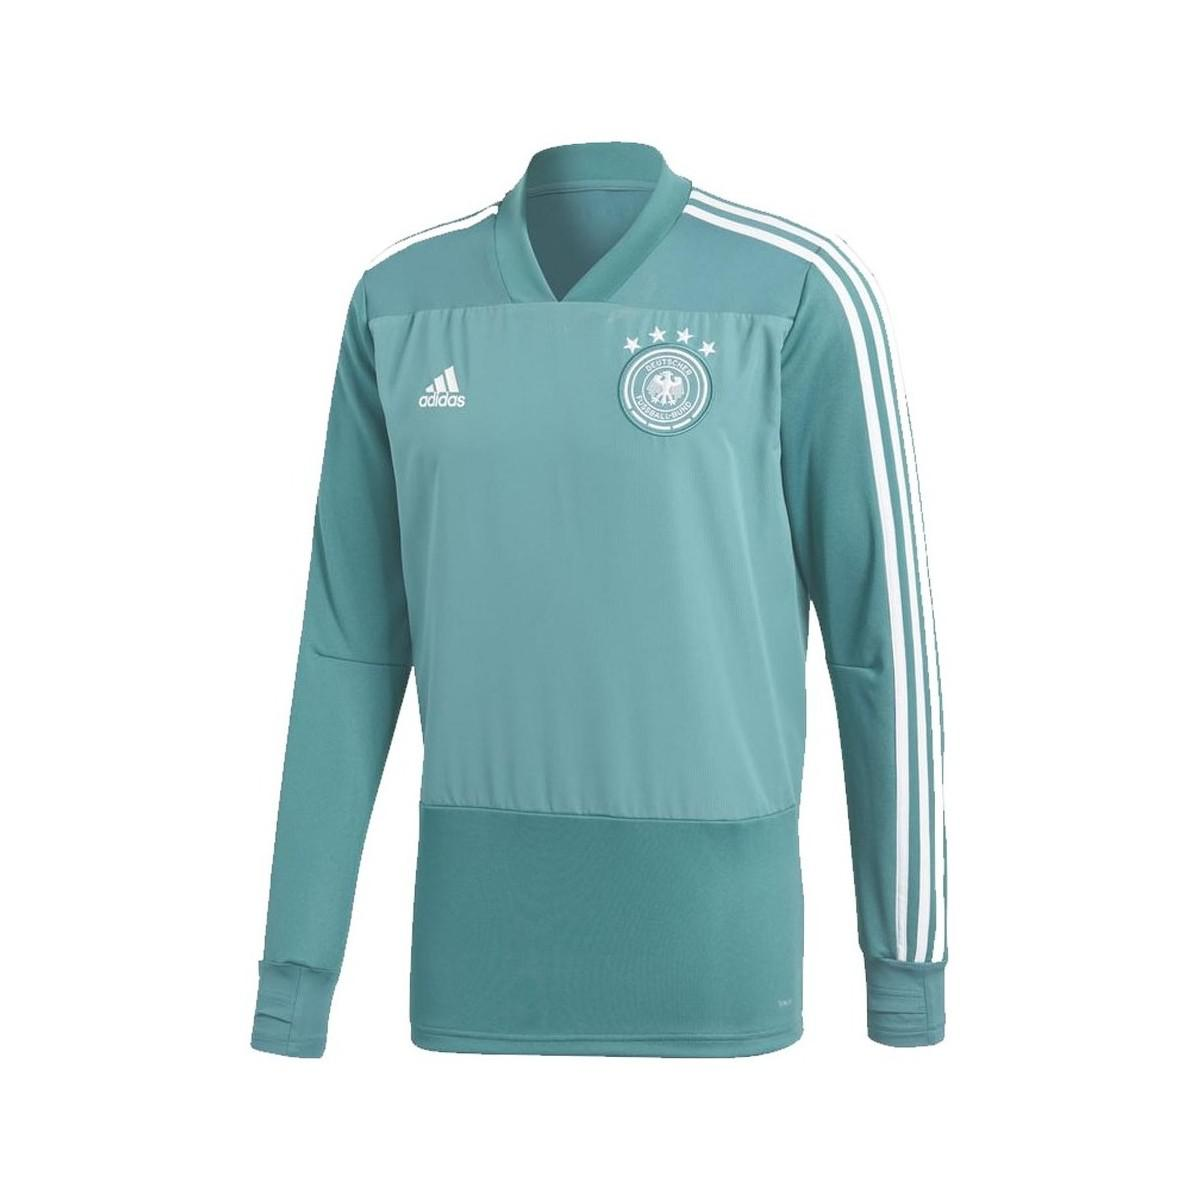 91f8a2855 adidas 2018-2019 Germany Training Top Men s In Green in Green for ...